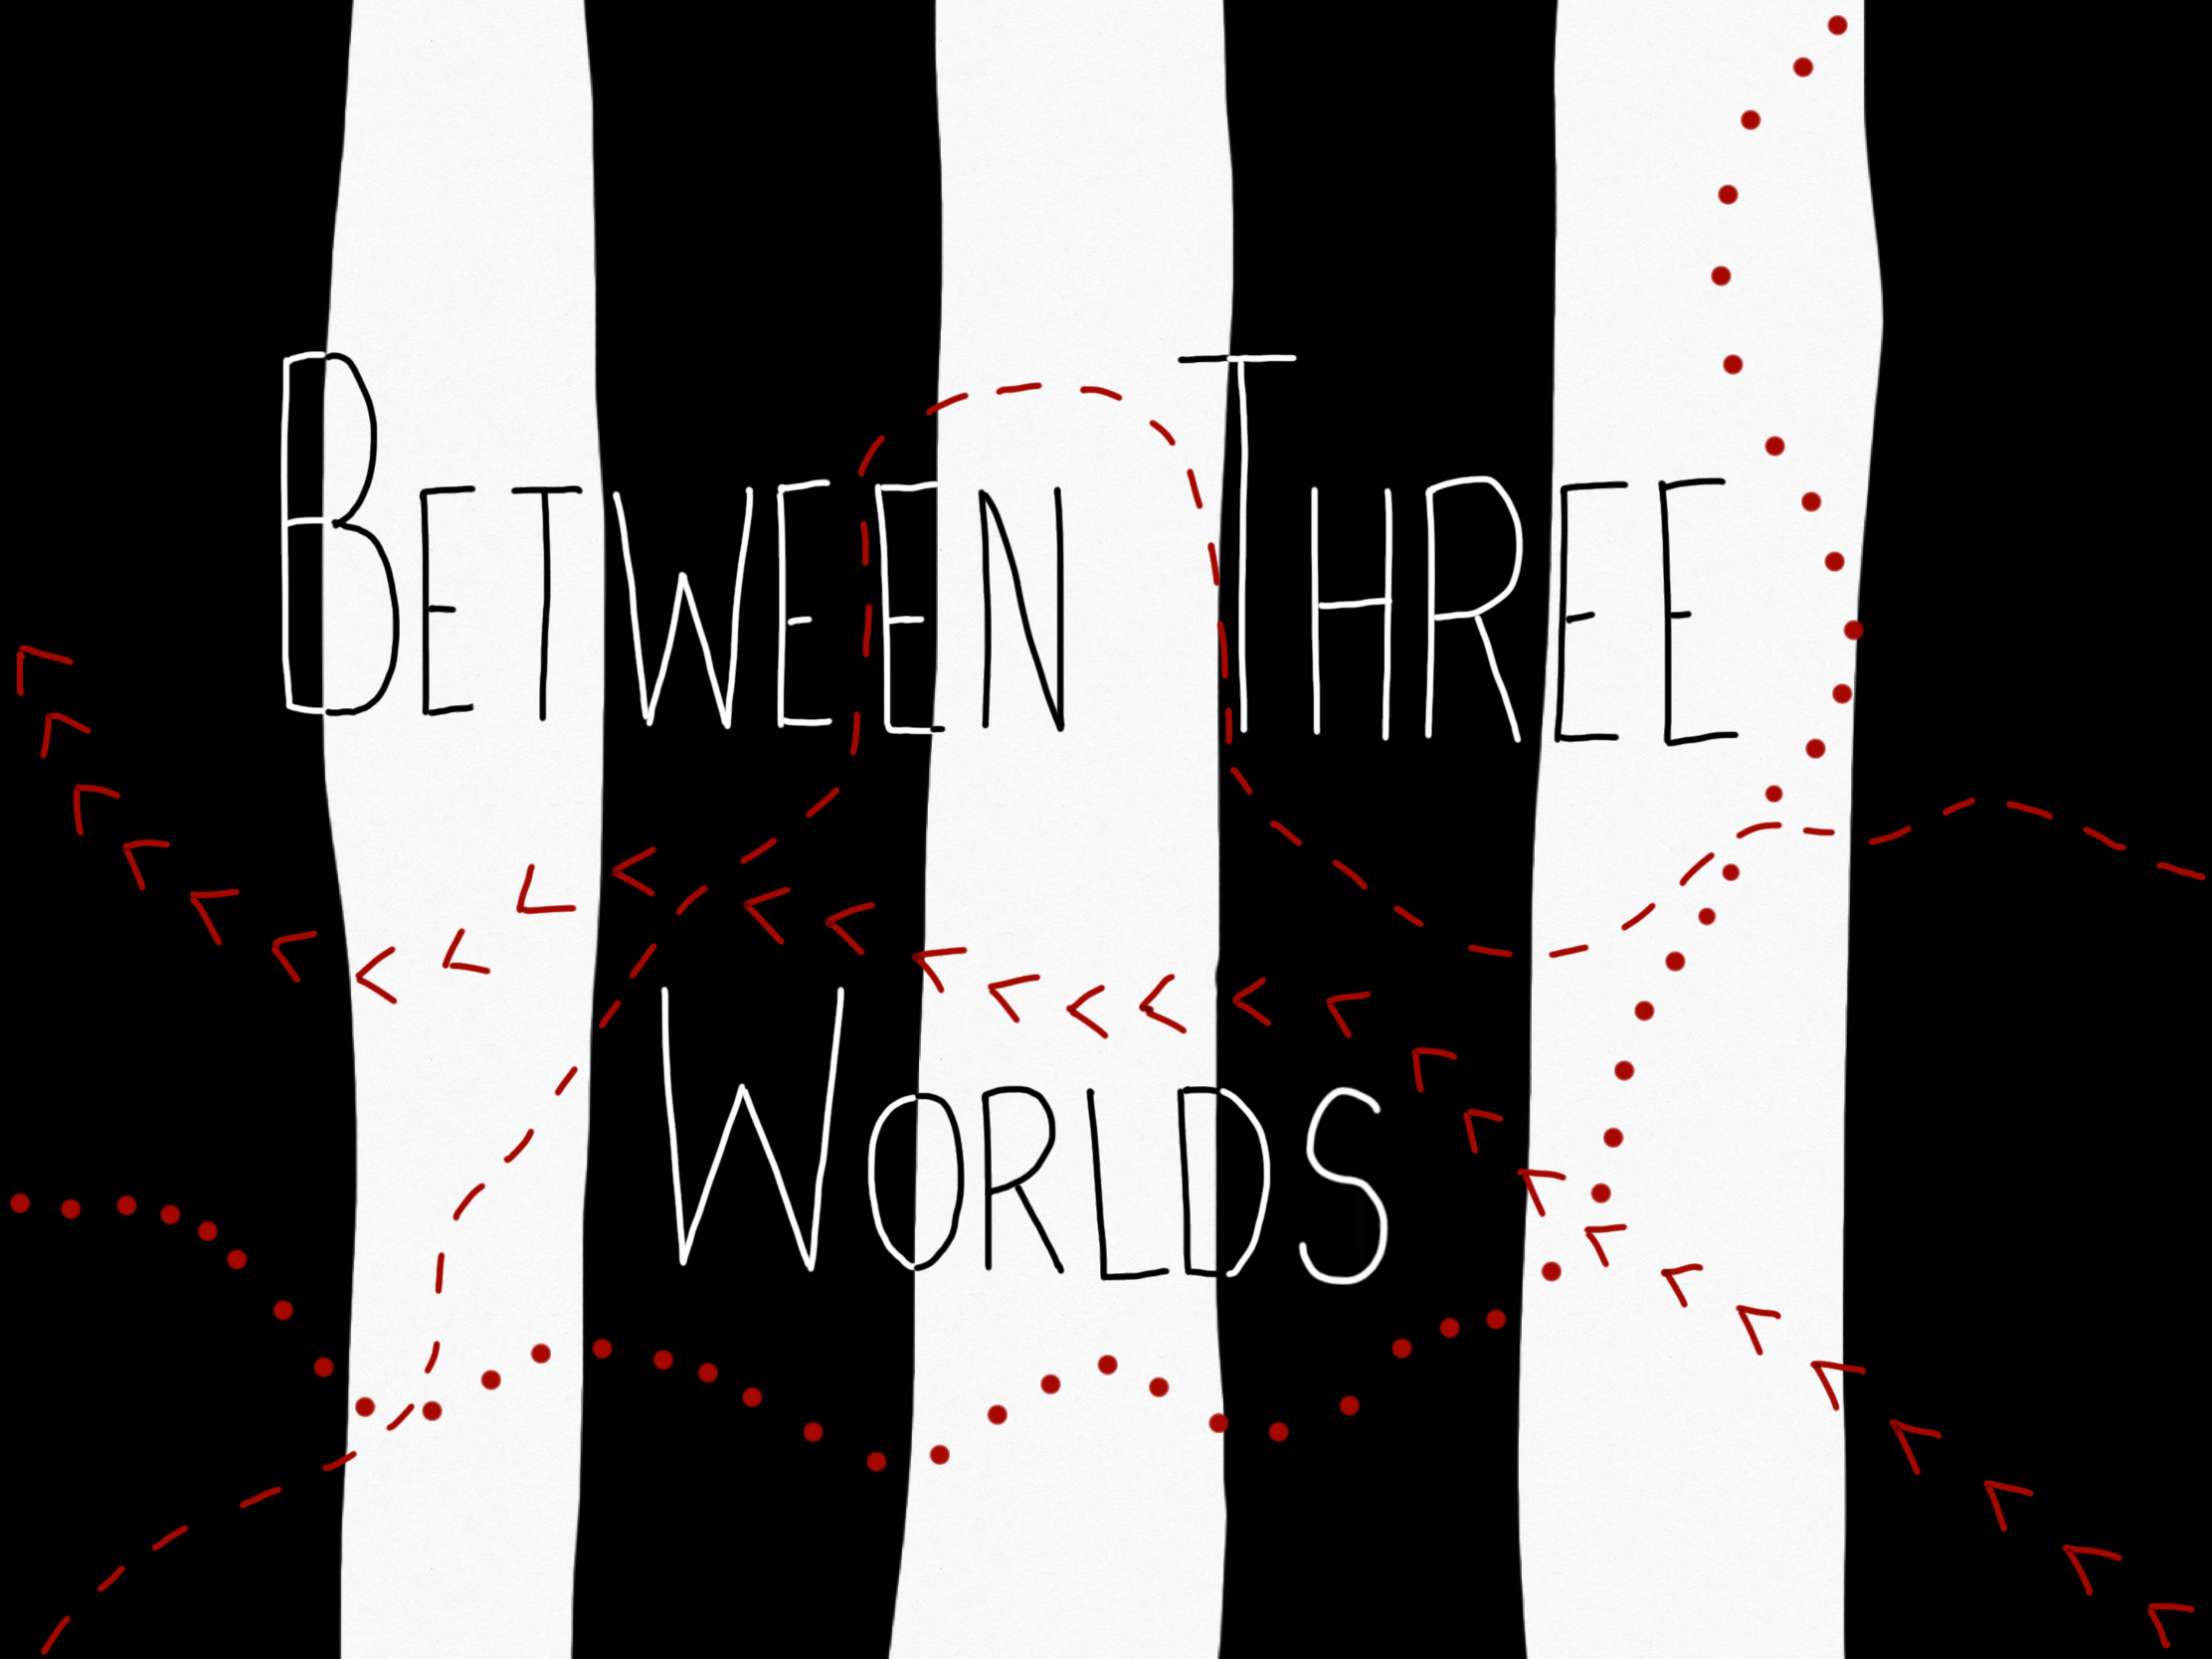 """""""Between Three Worlds"""" inverted against a black and white striped background. Three trails in red - one dots, one dashes and one arrows."""